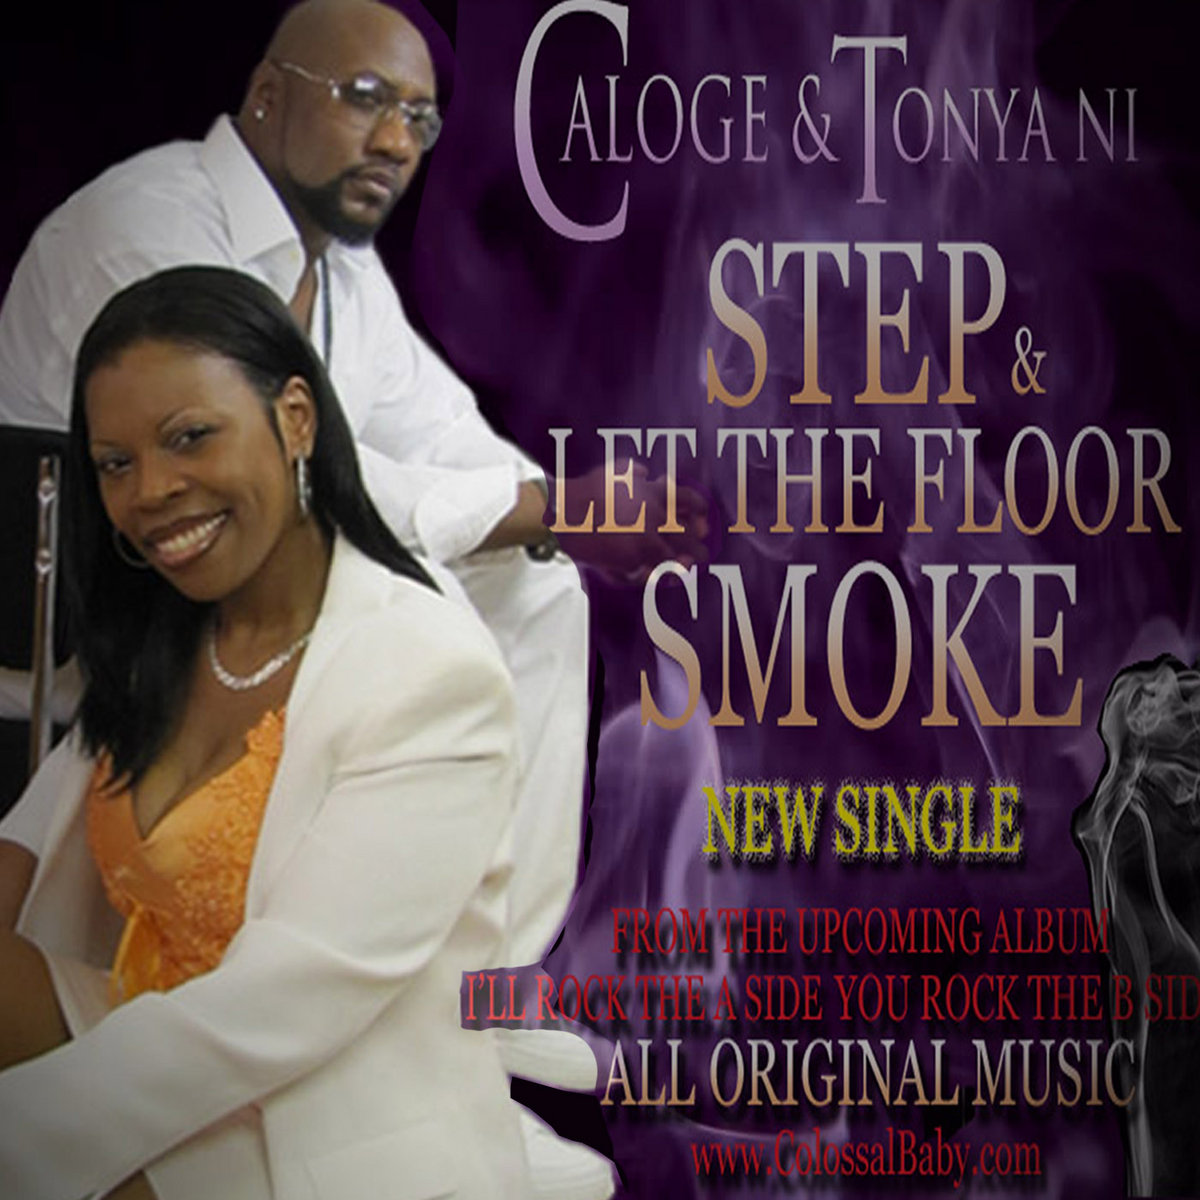 Step & Let The Floor Smoke by Caloge The Windshifter